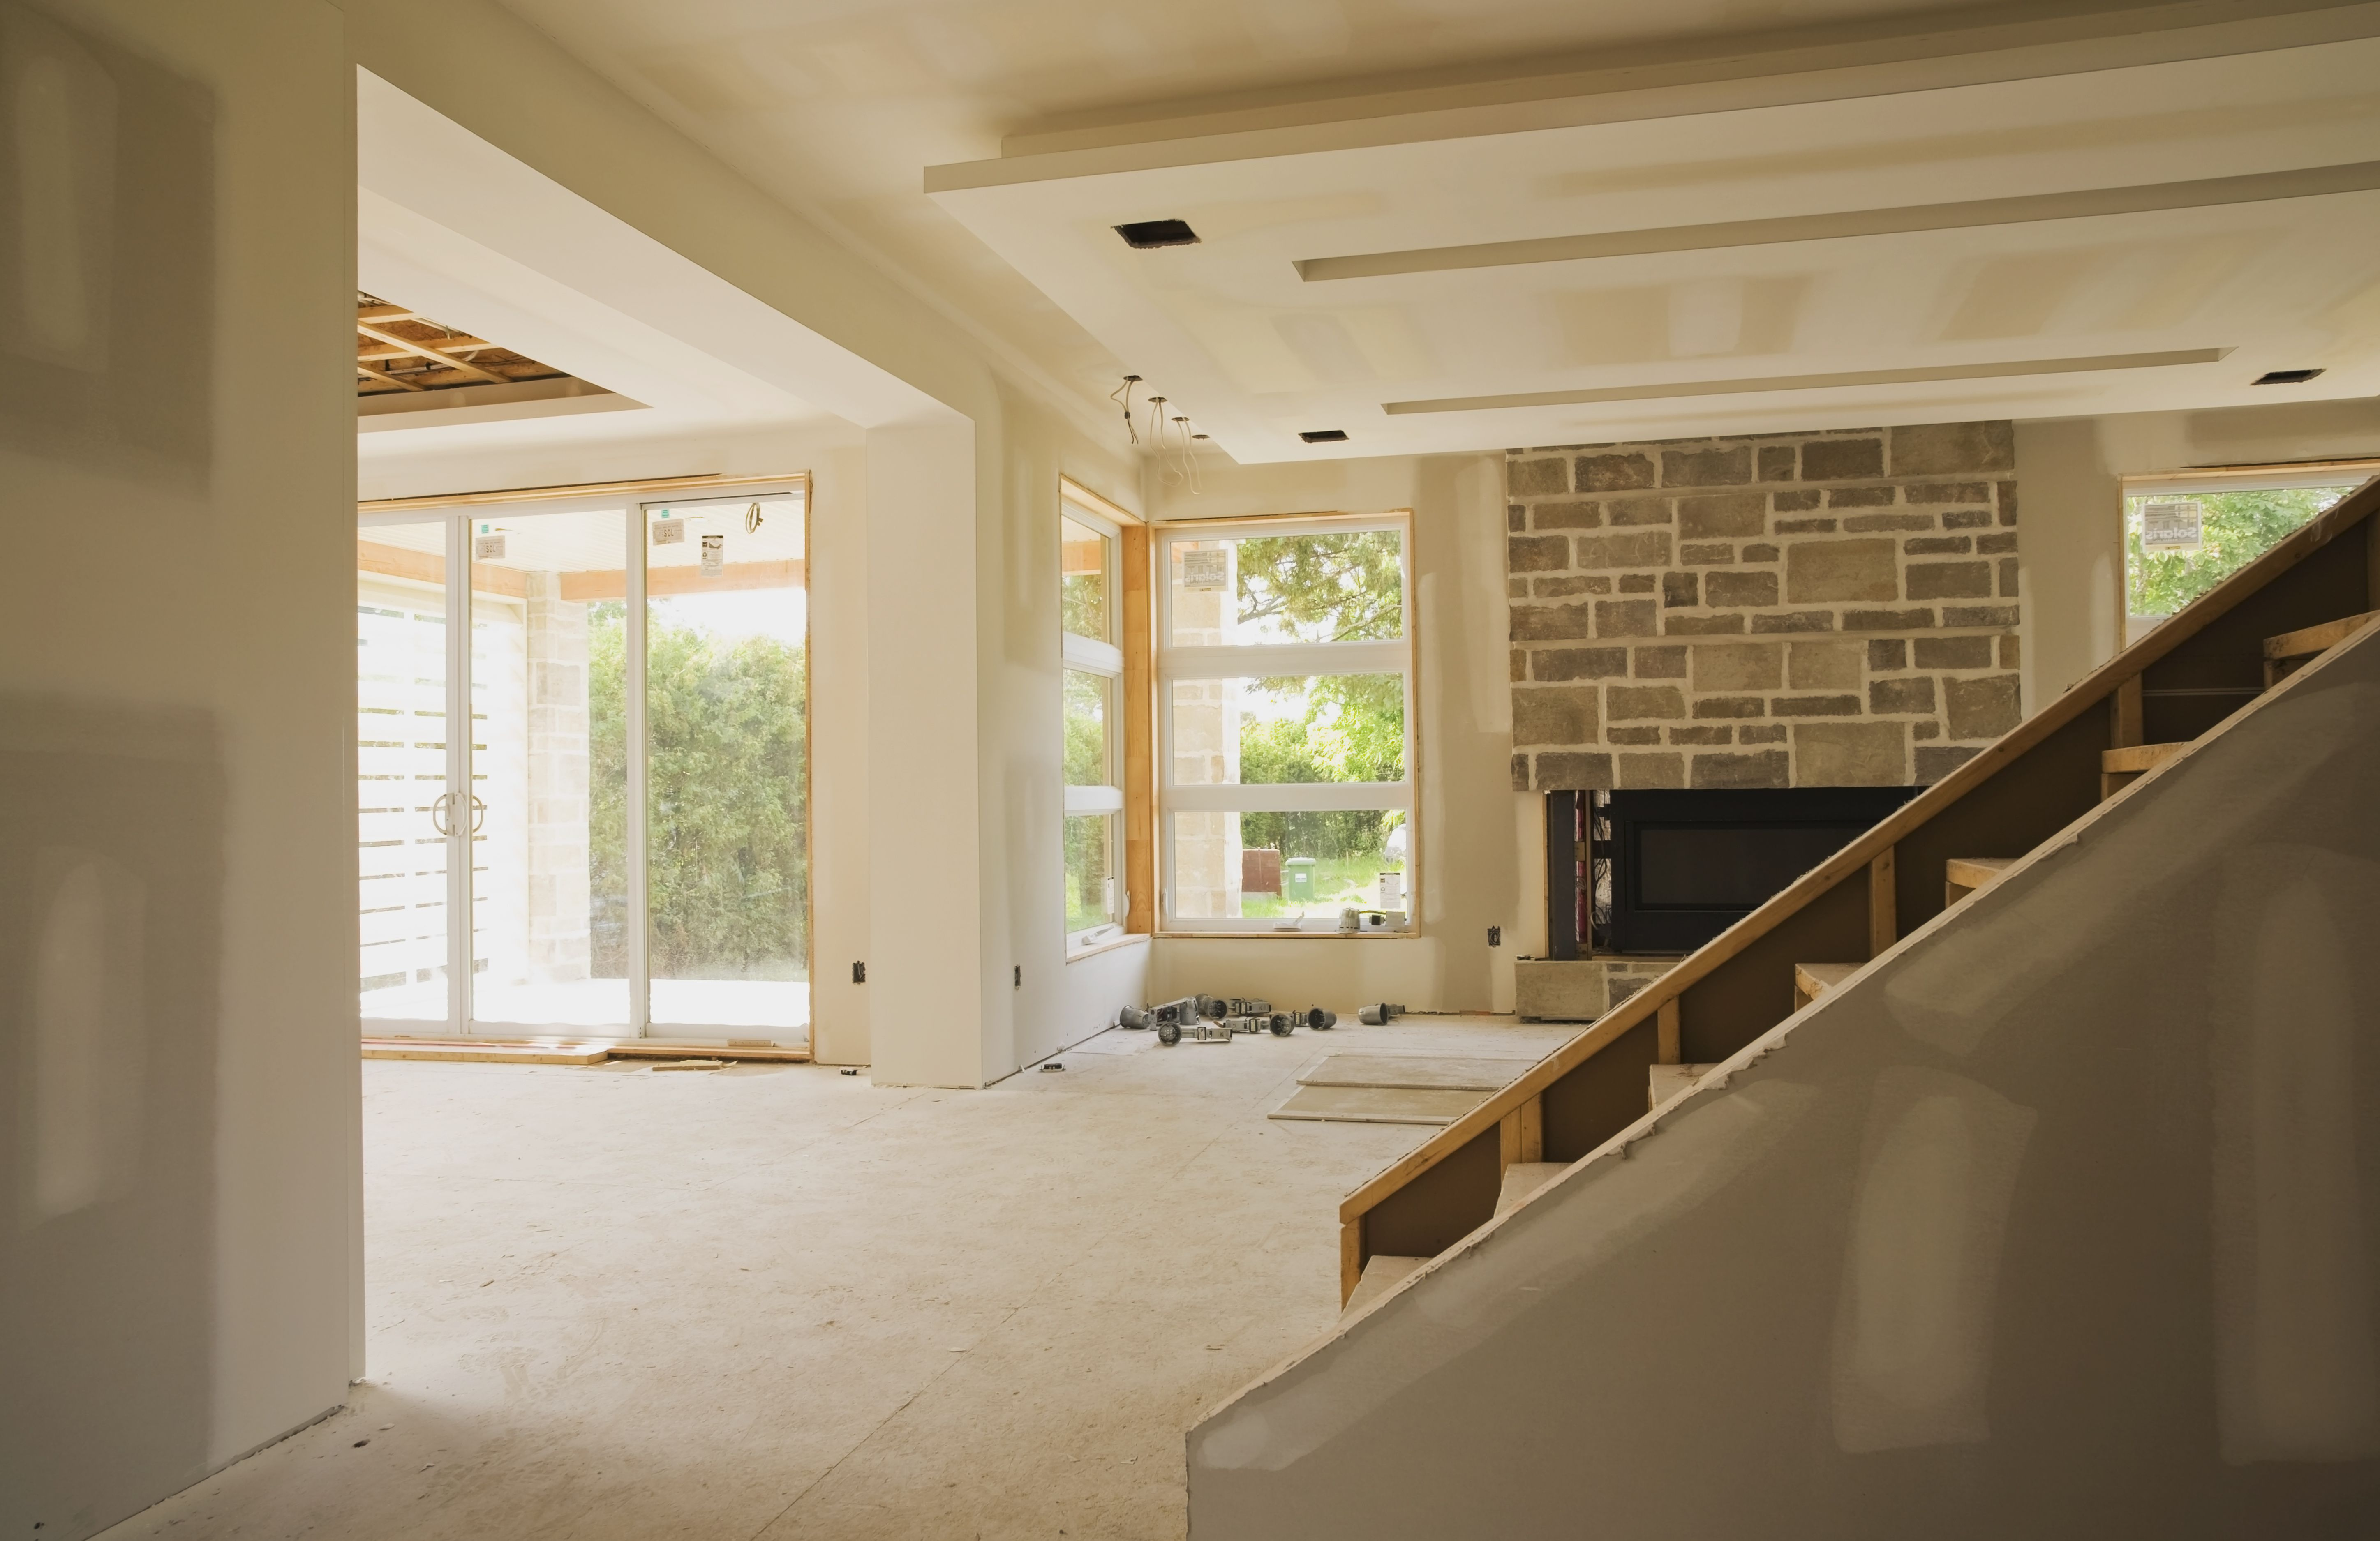 Unfinished Staircase And Living Room In An Upscale Residential Home